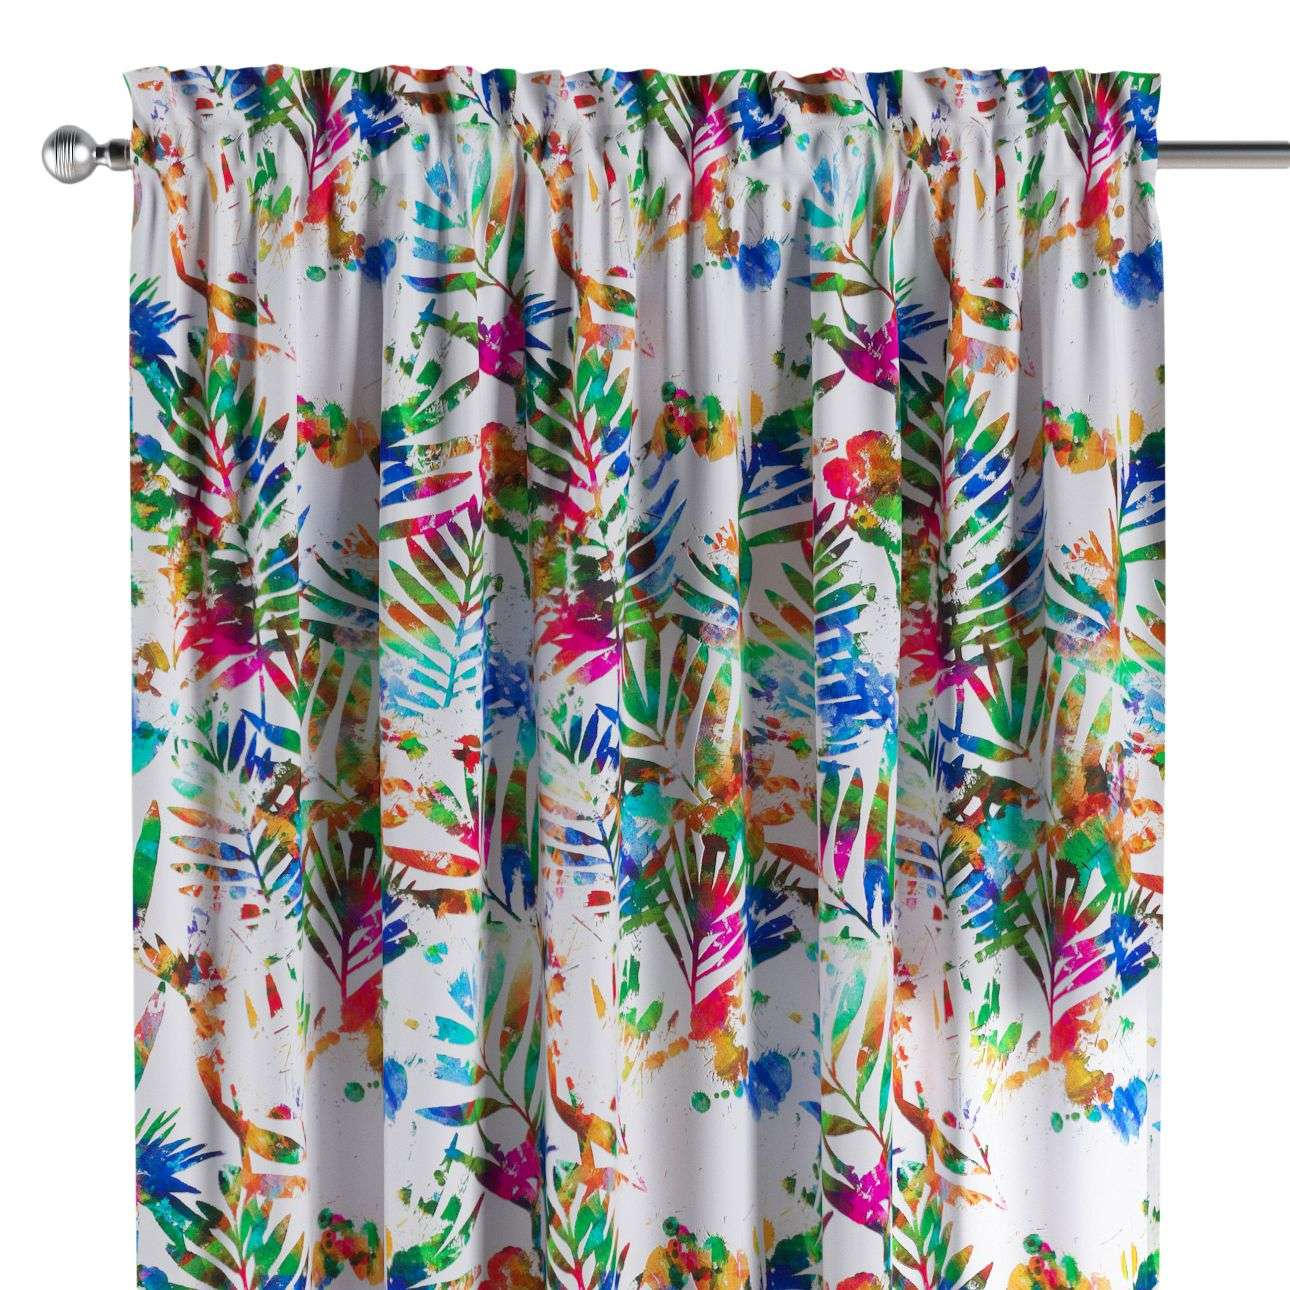 Slot and frill curtains 130 x 260 cm (51 x 102 inch) in collection New Art, fabric: 140-22